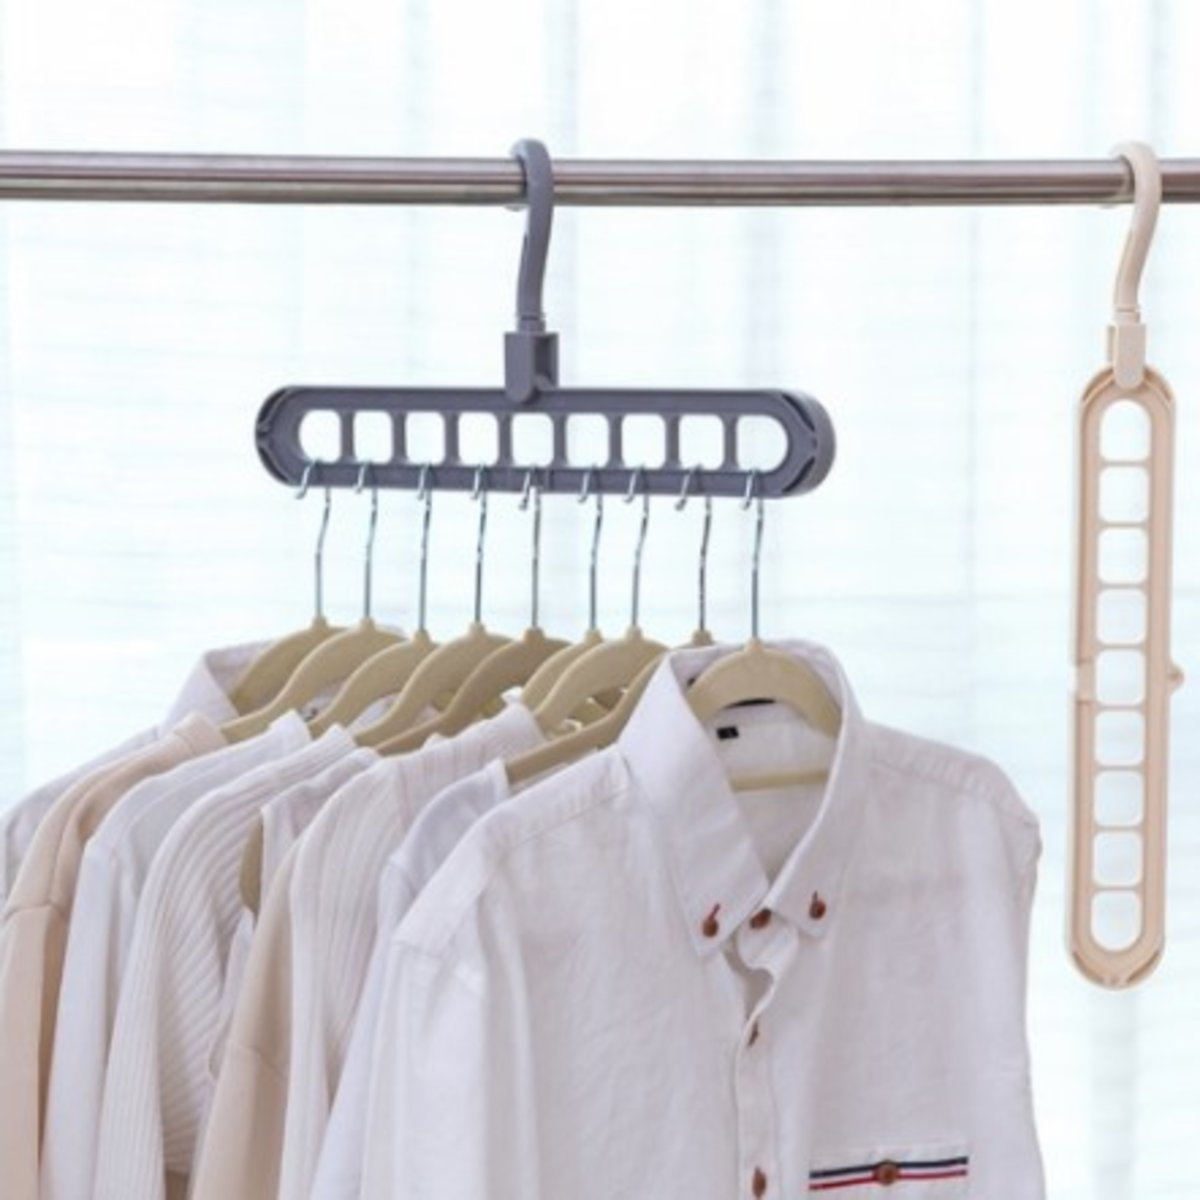 Save Space 360° Rotating Hanger